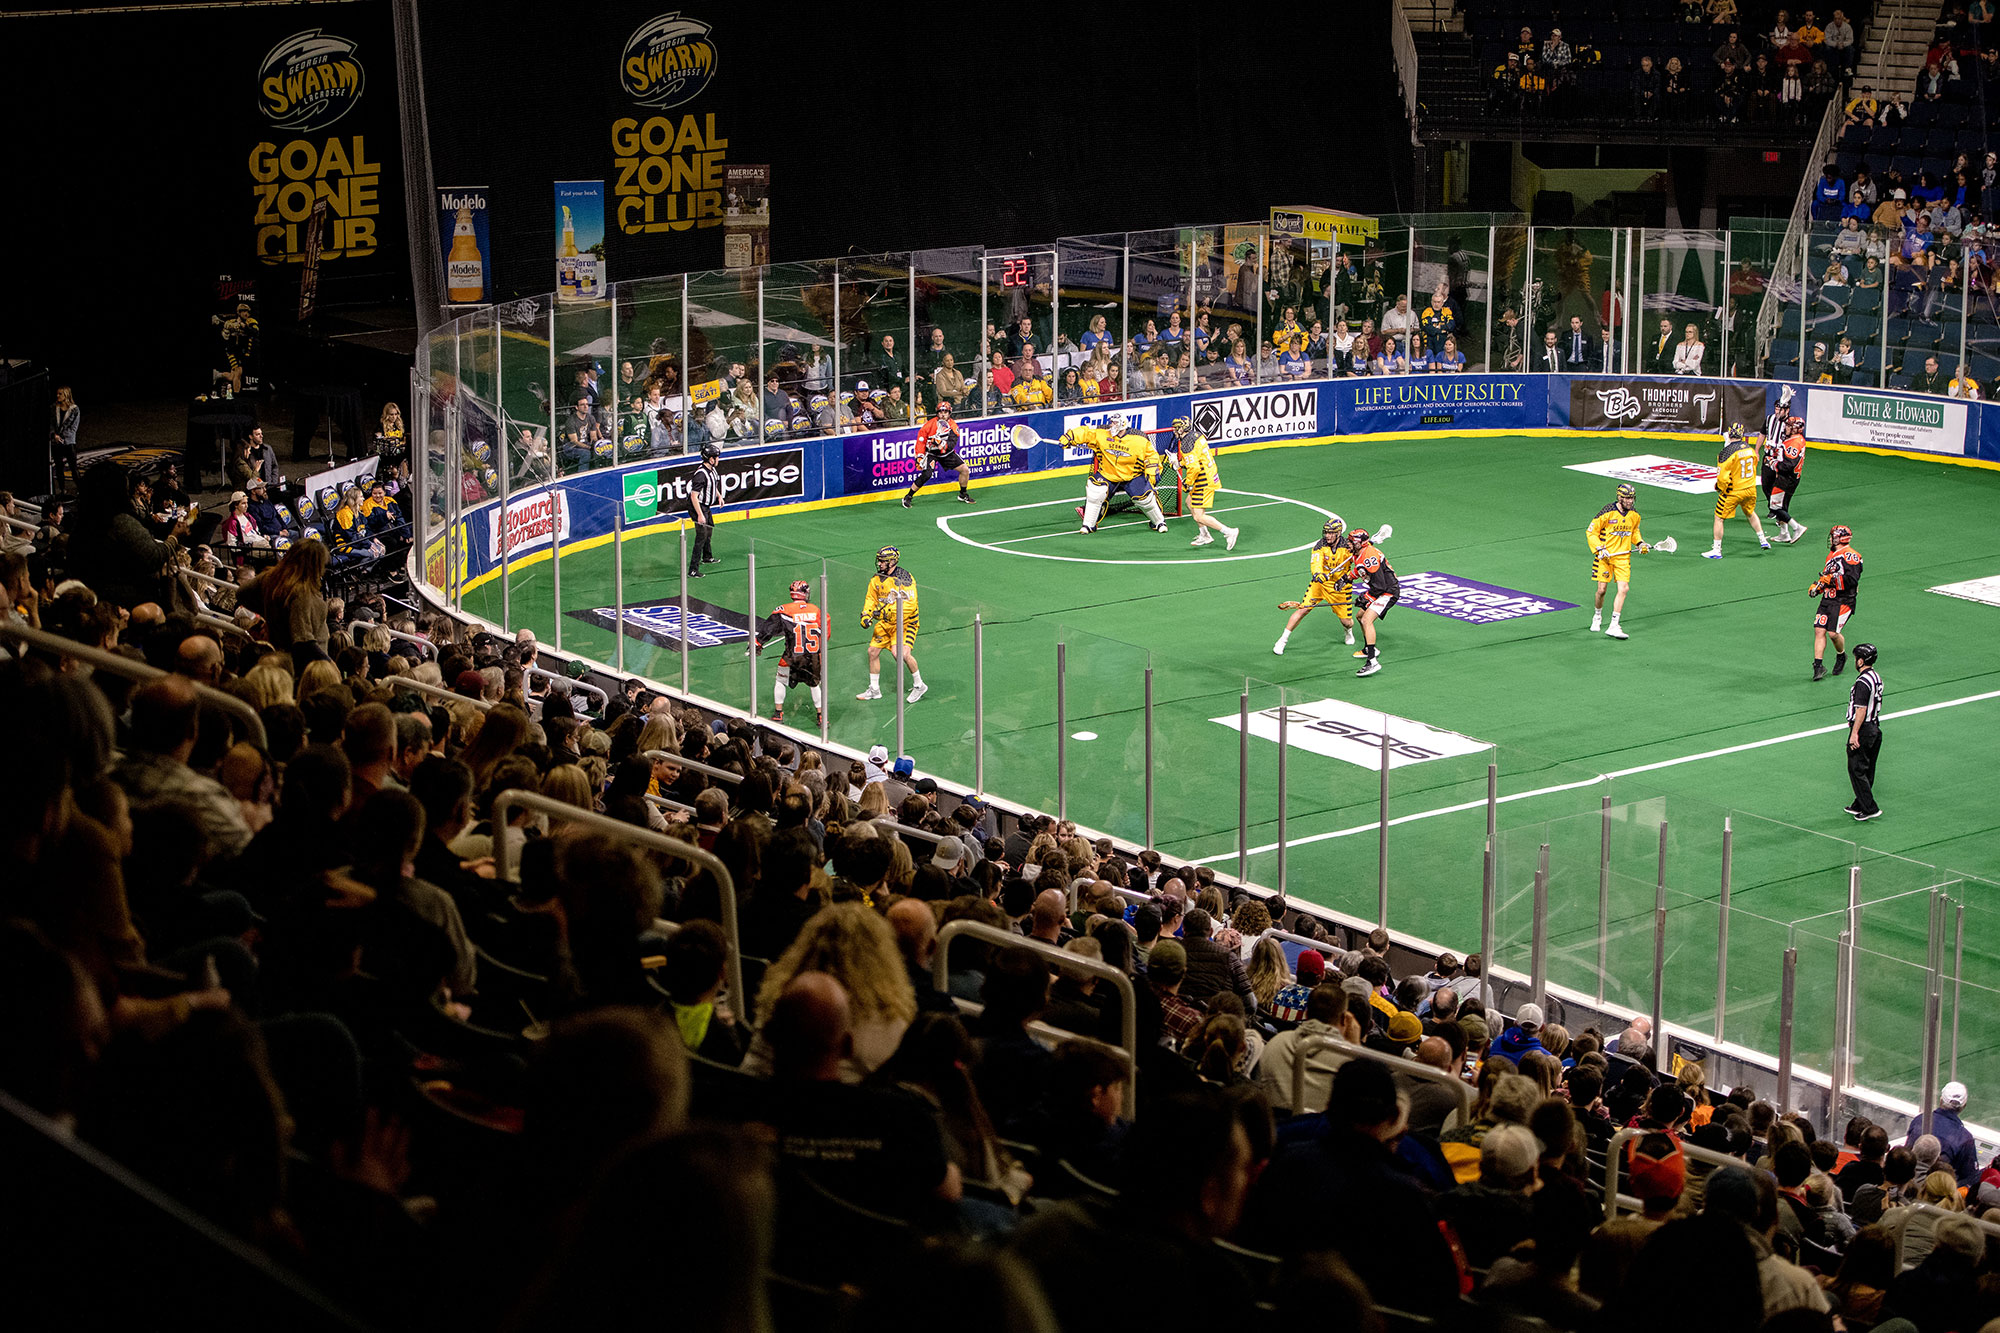 Georgia Swarm lacrosse team playing at Gwinnett's Infinite Energy Arena in Duluth